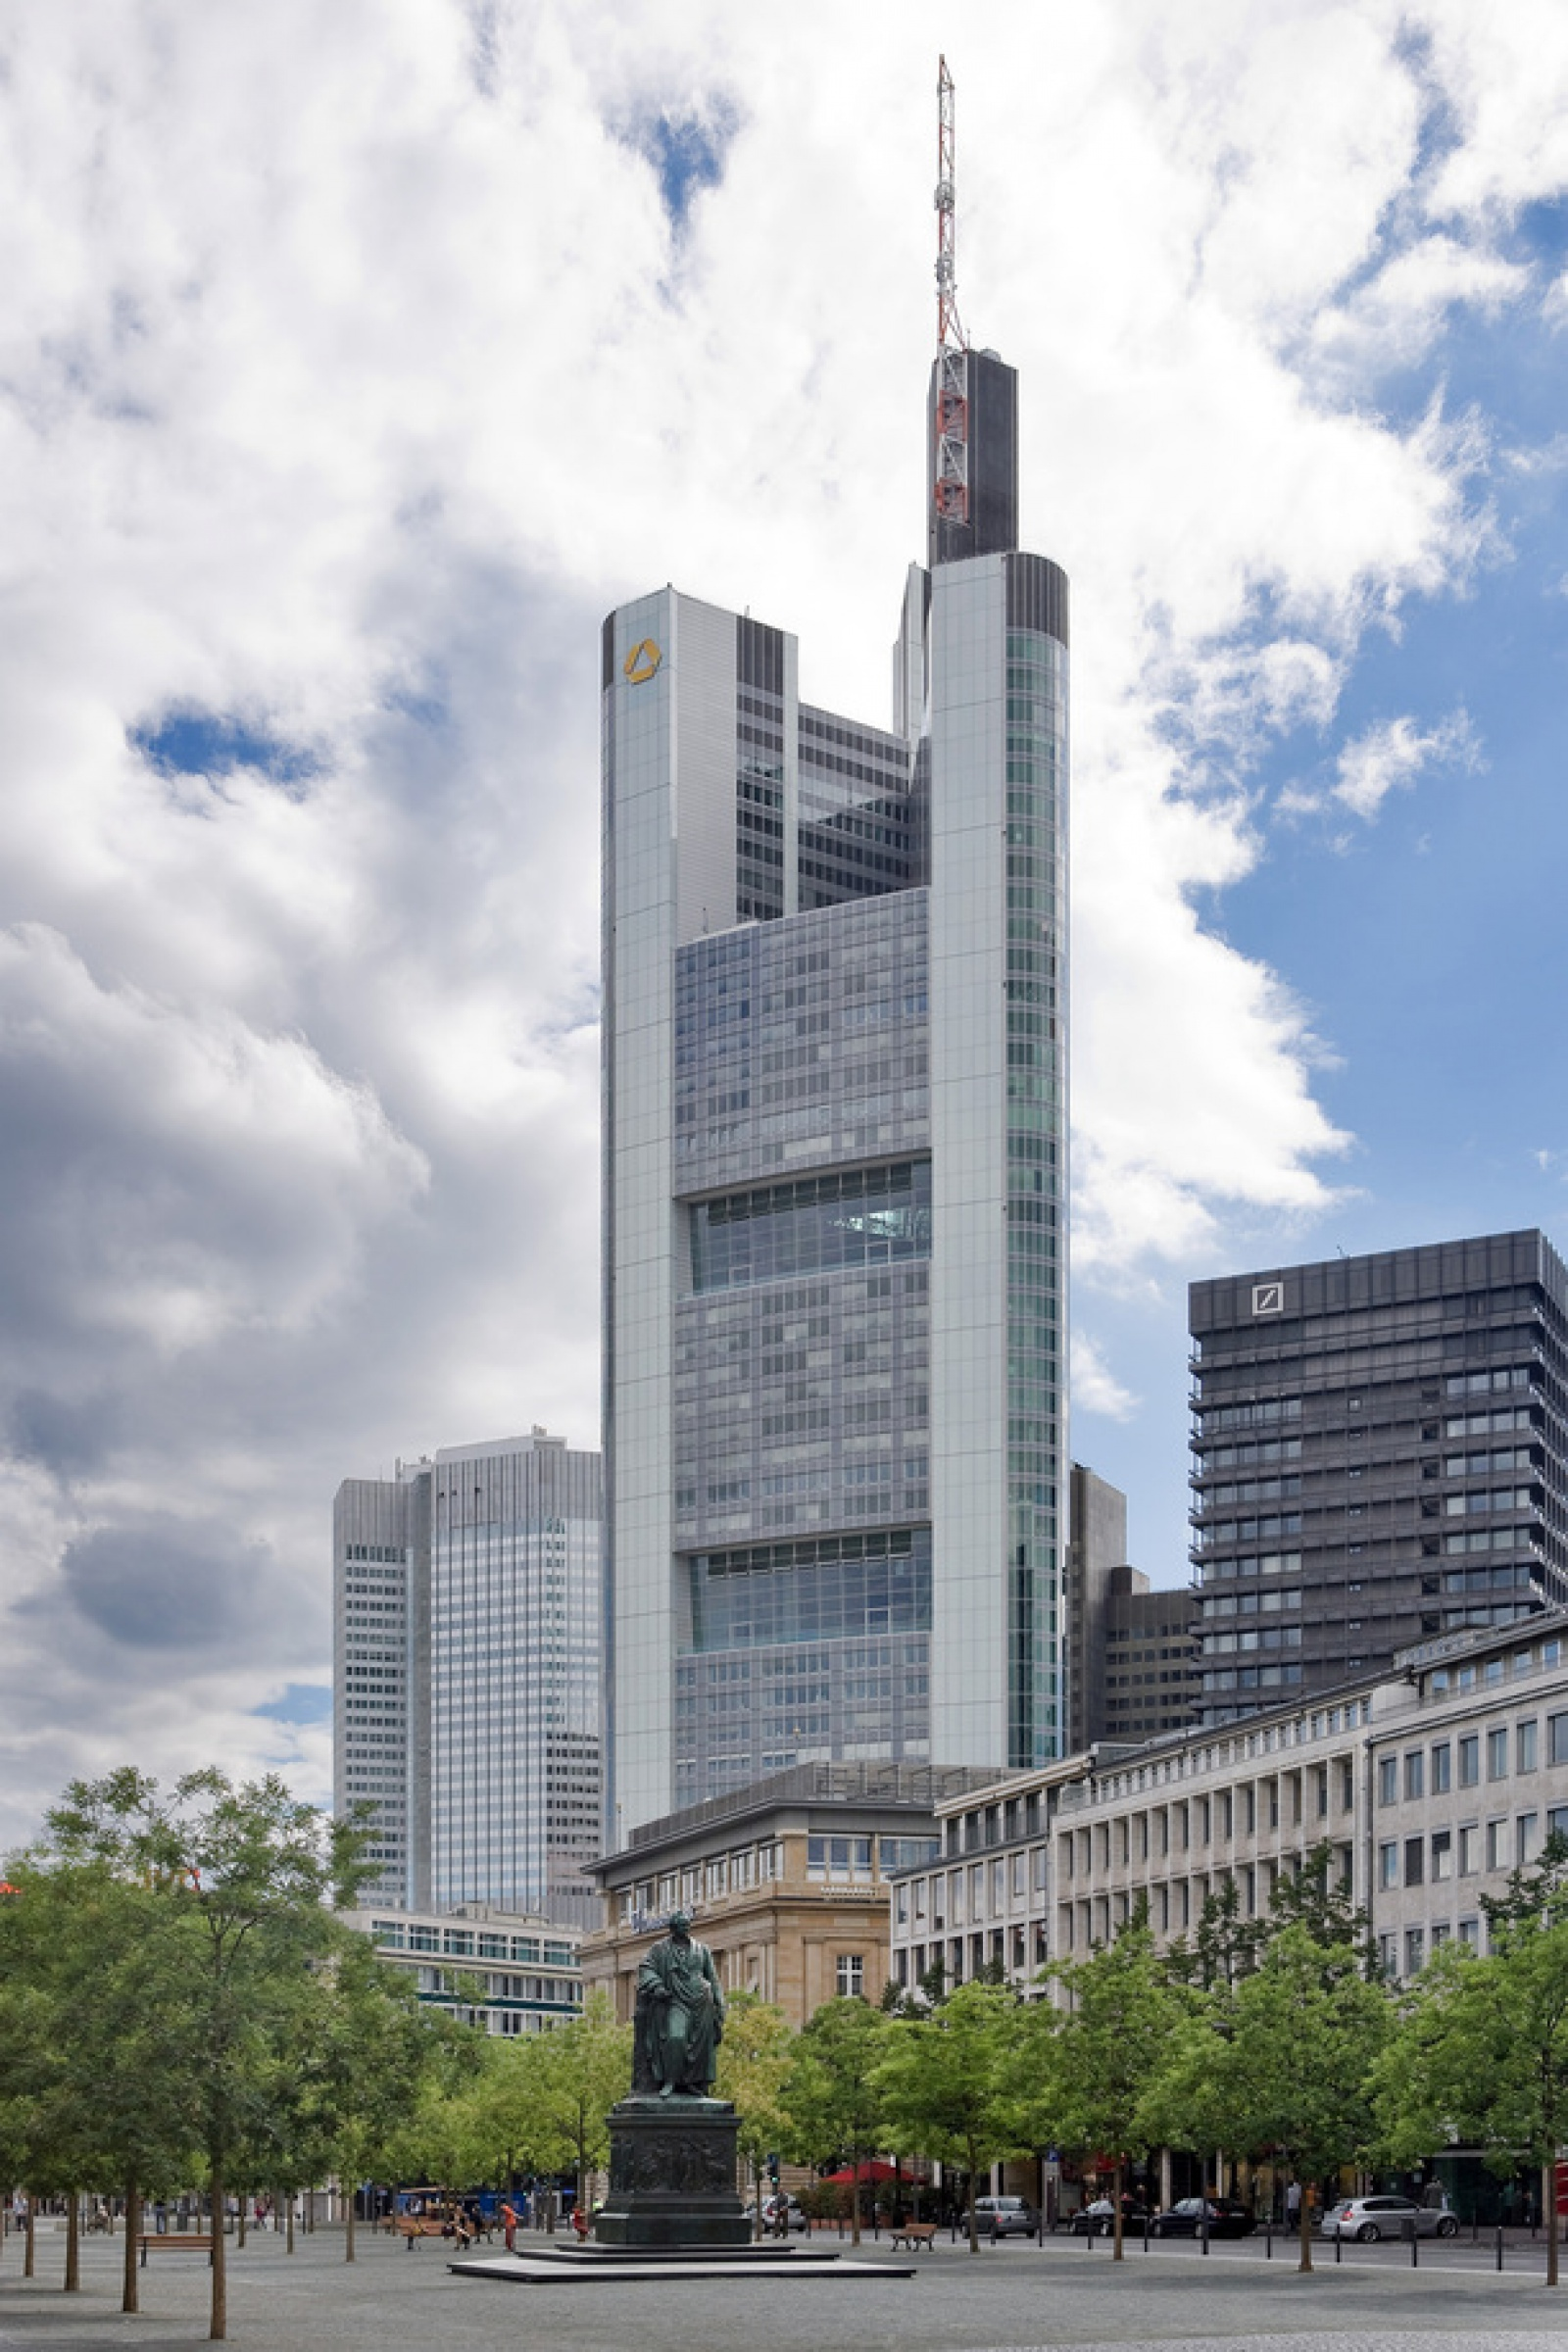 2Frankfurt_Am_Main-Commerzbank_Tower_vom_Rathenauplatz-20100808